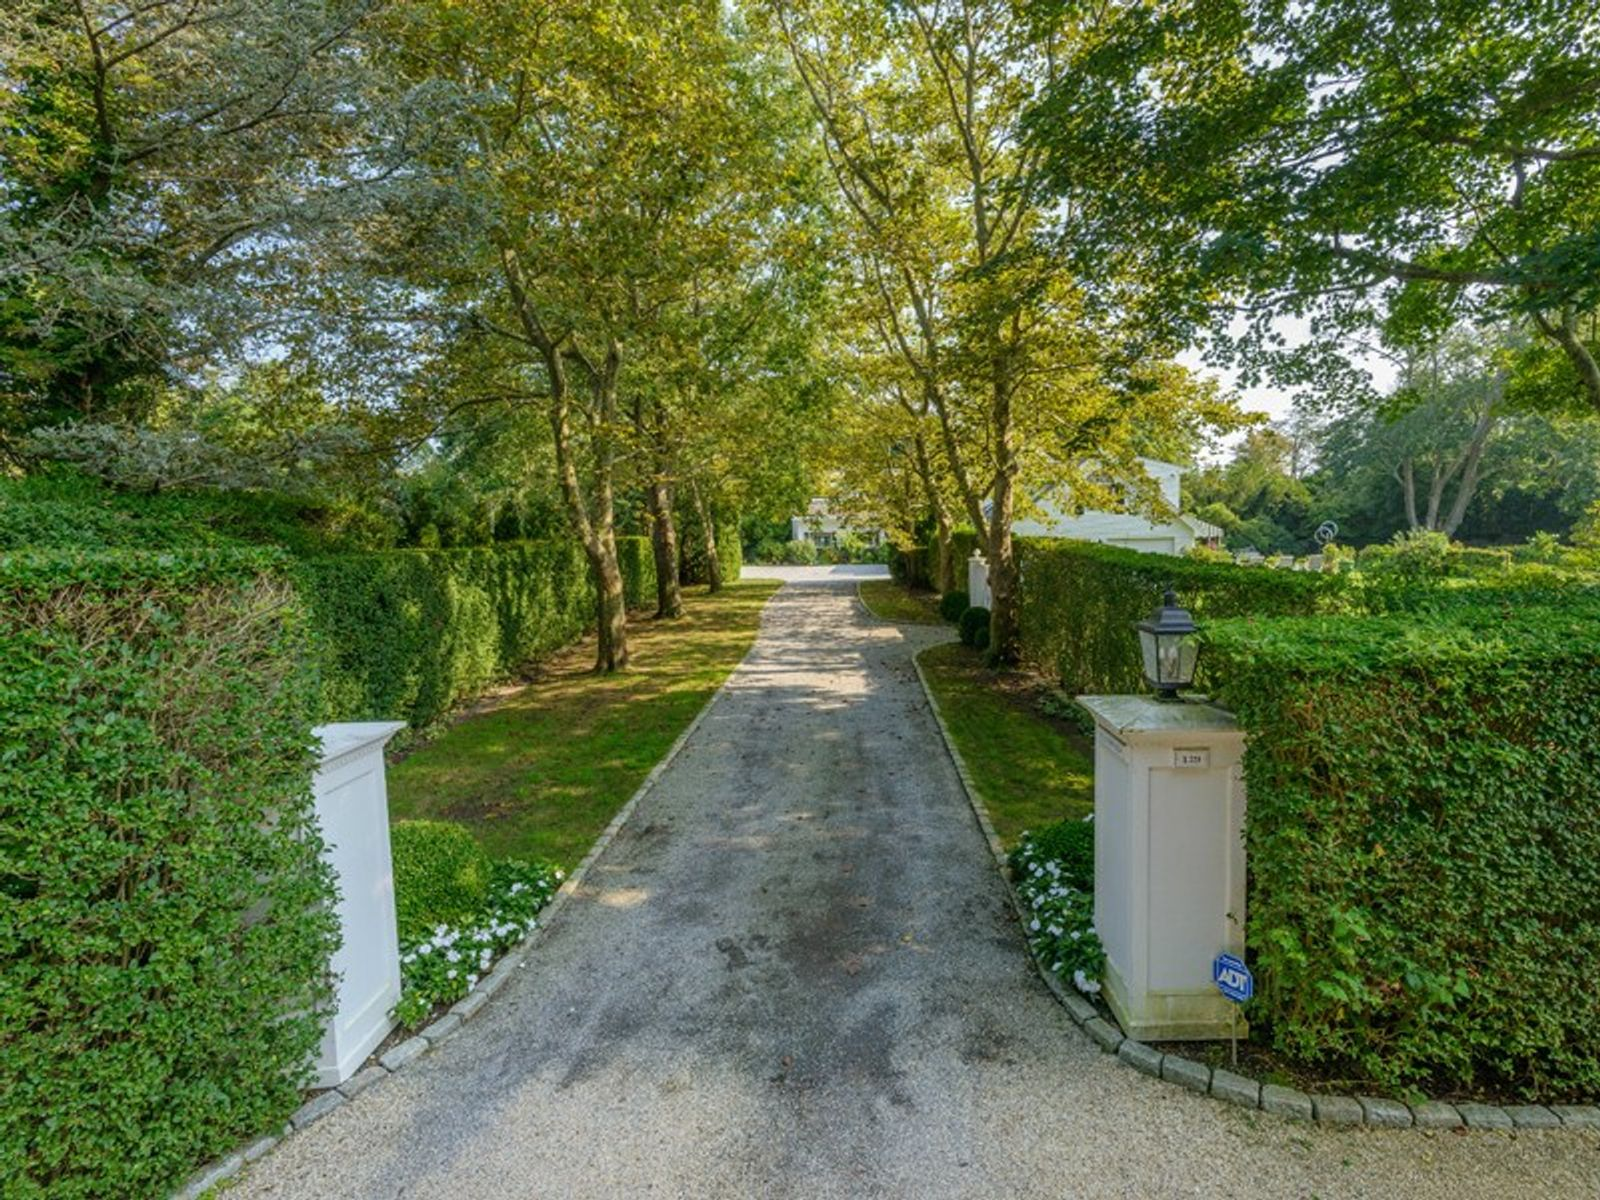 On South Main with Pool  & Tennis, Southampton NY Single Family Home - Hamptons Real Estate